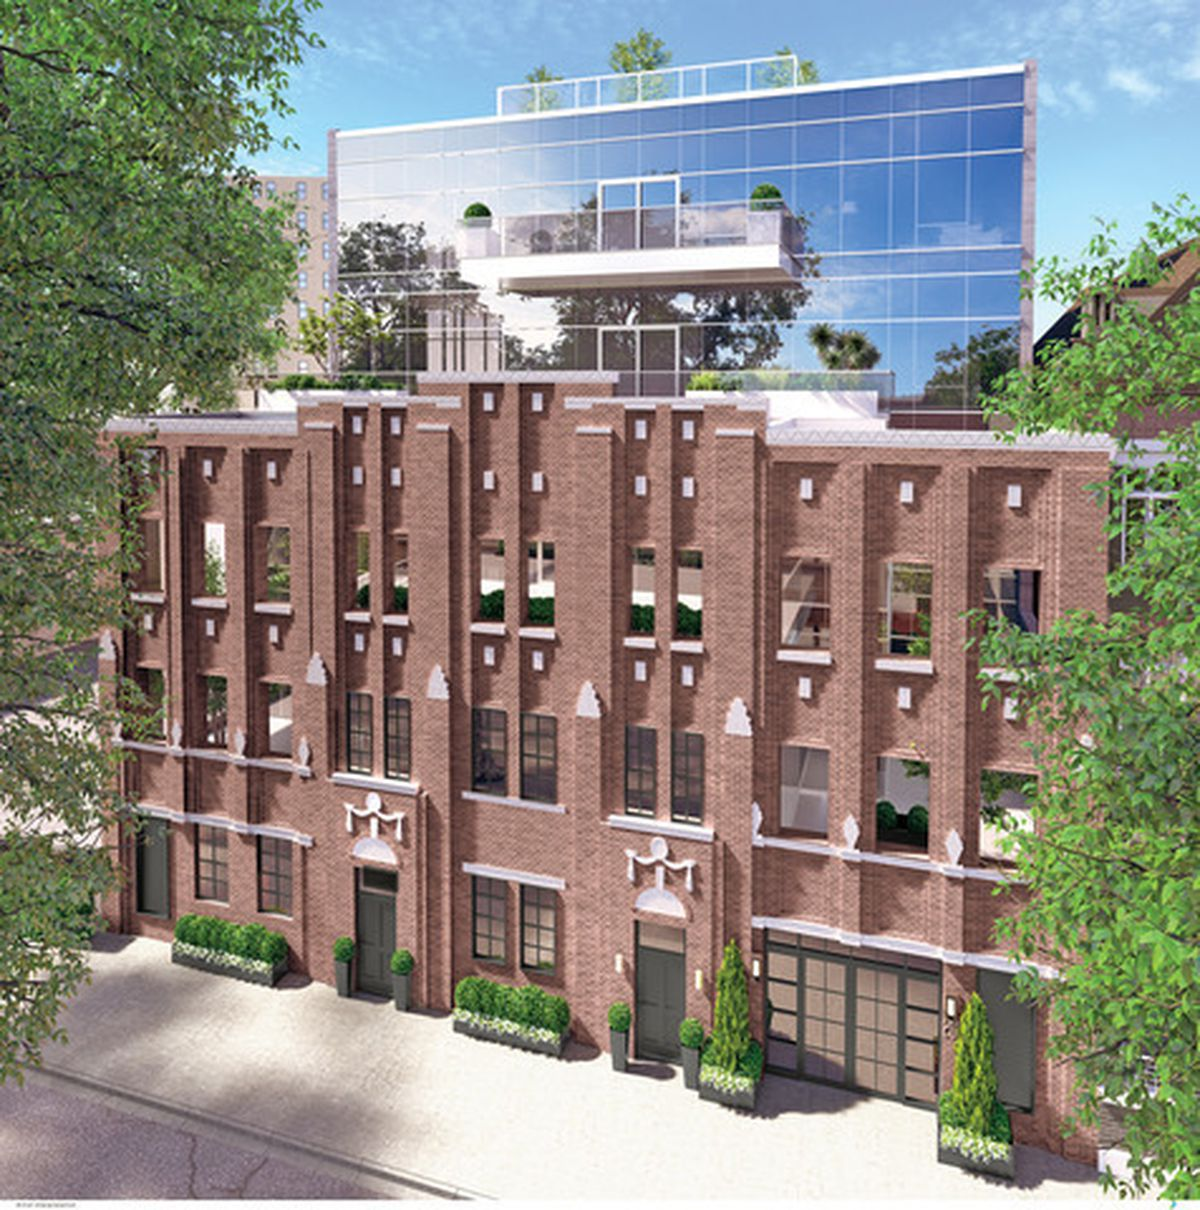 Lincoln Park Condo Being Built Inside Old Parking Garage